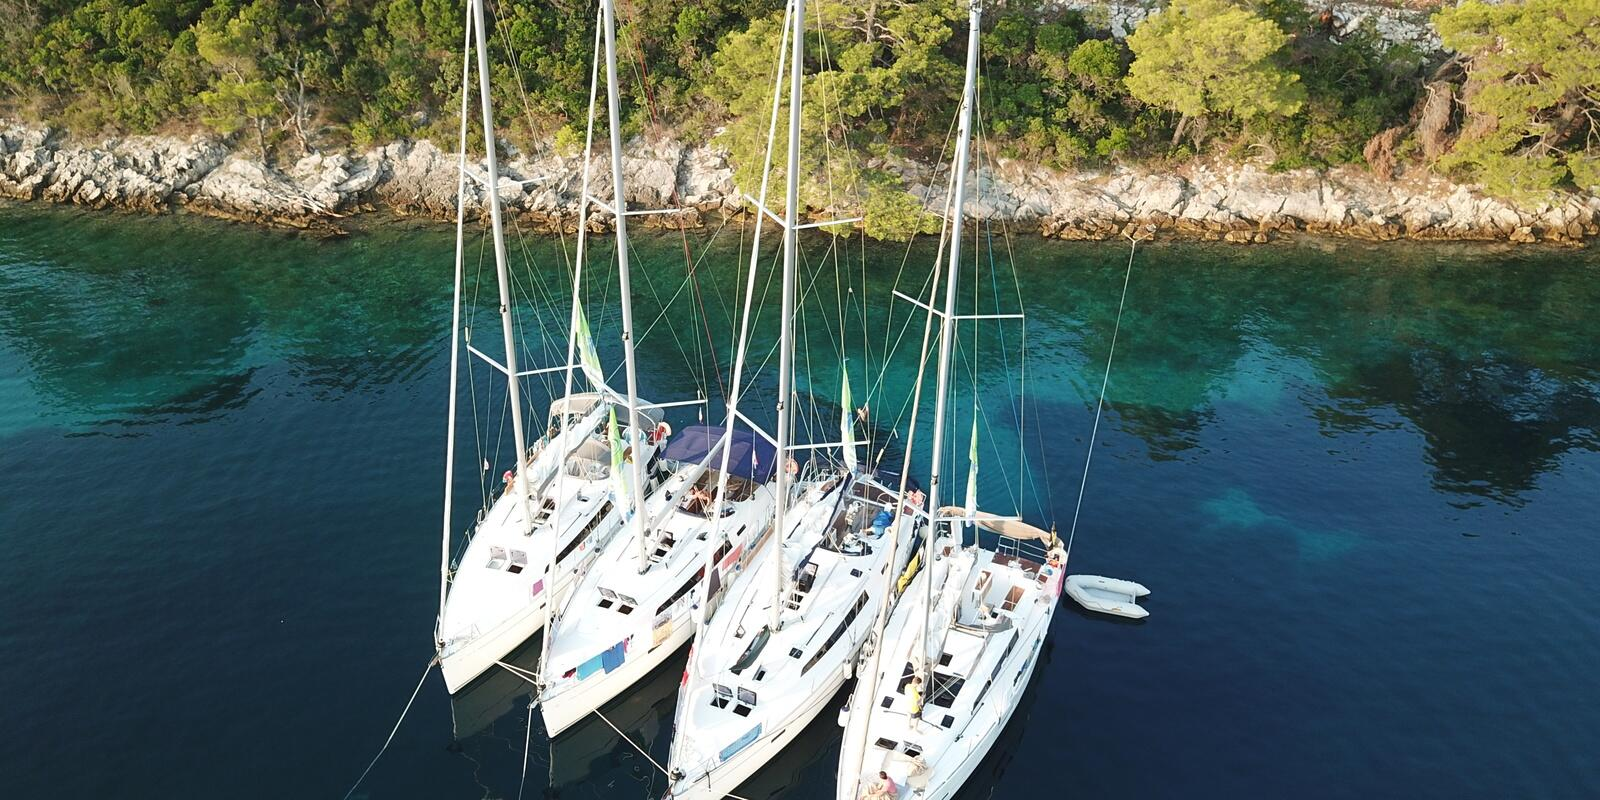 CrazySail flotilla of 9 boats in Croatia - ORIGINAL Route